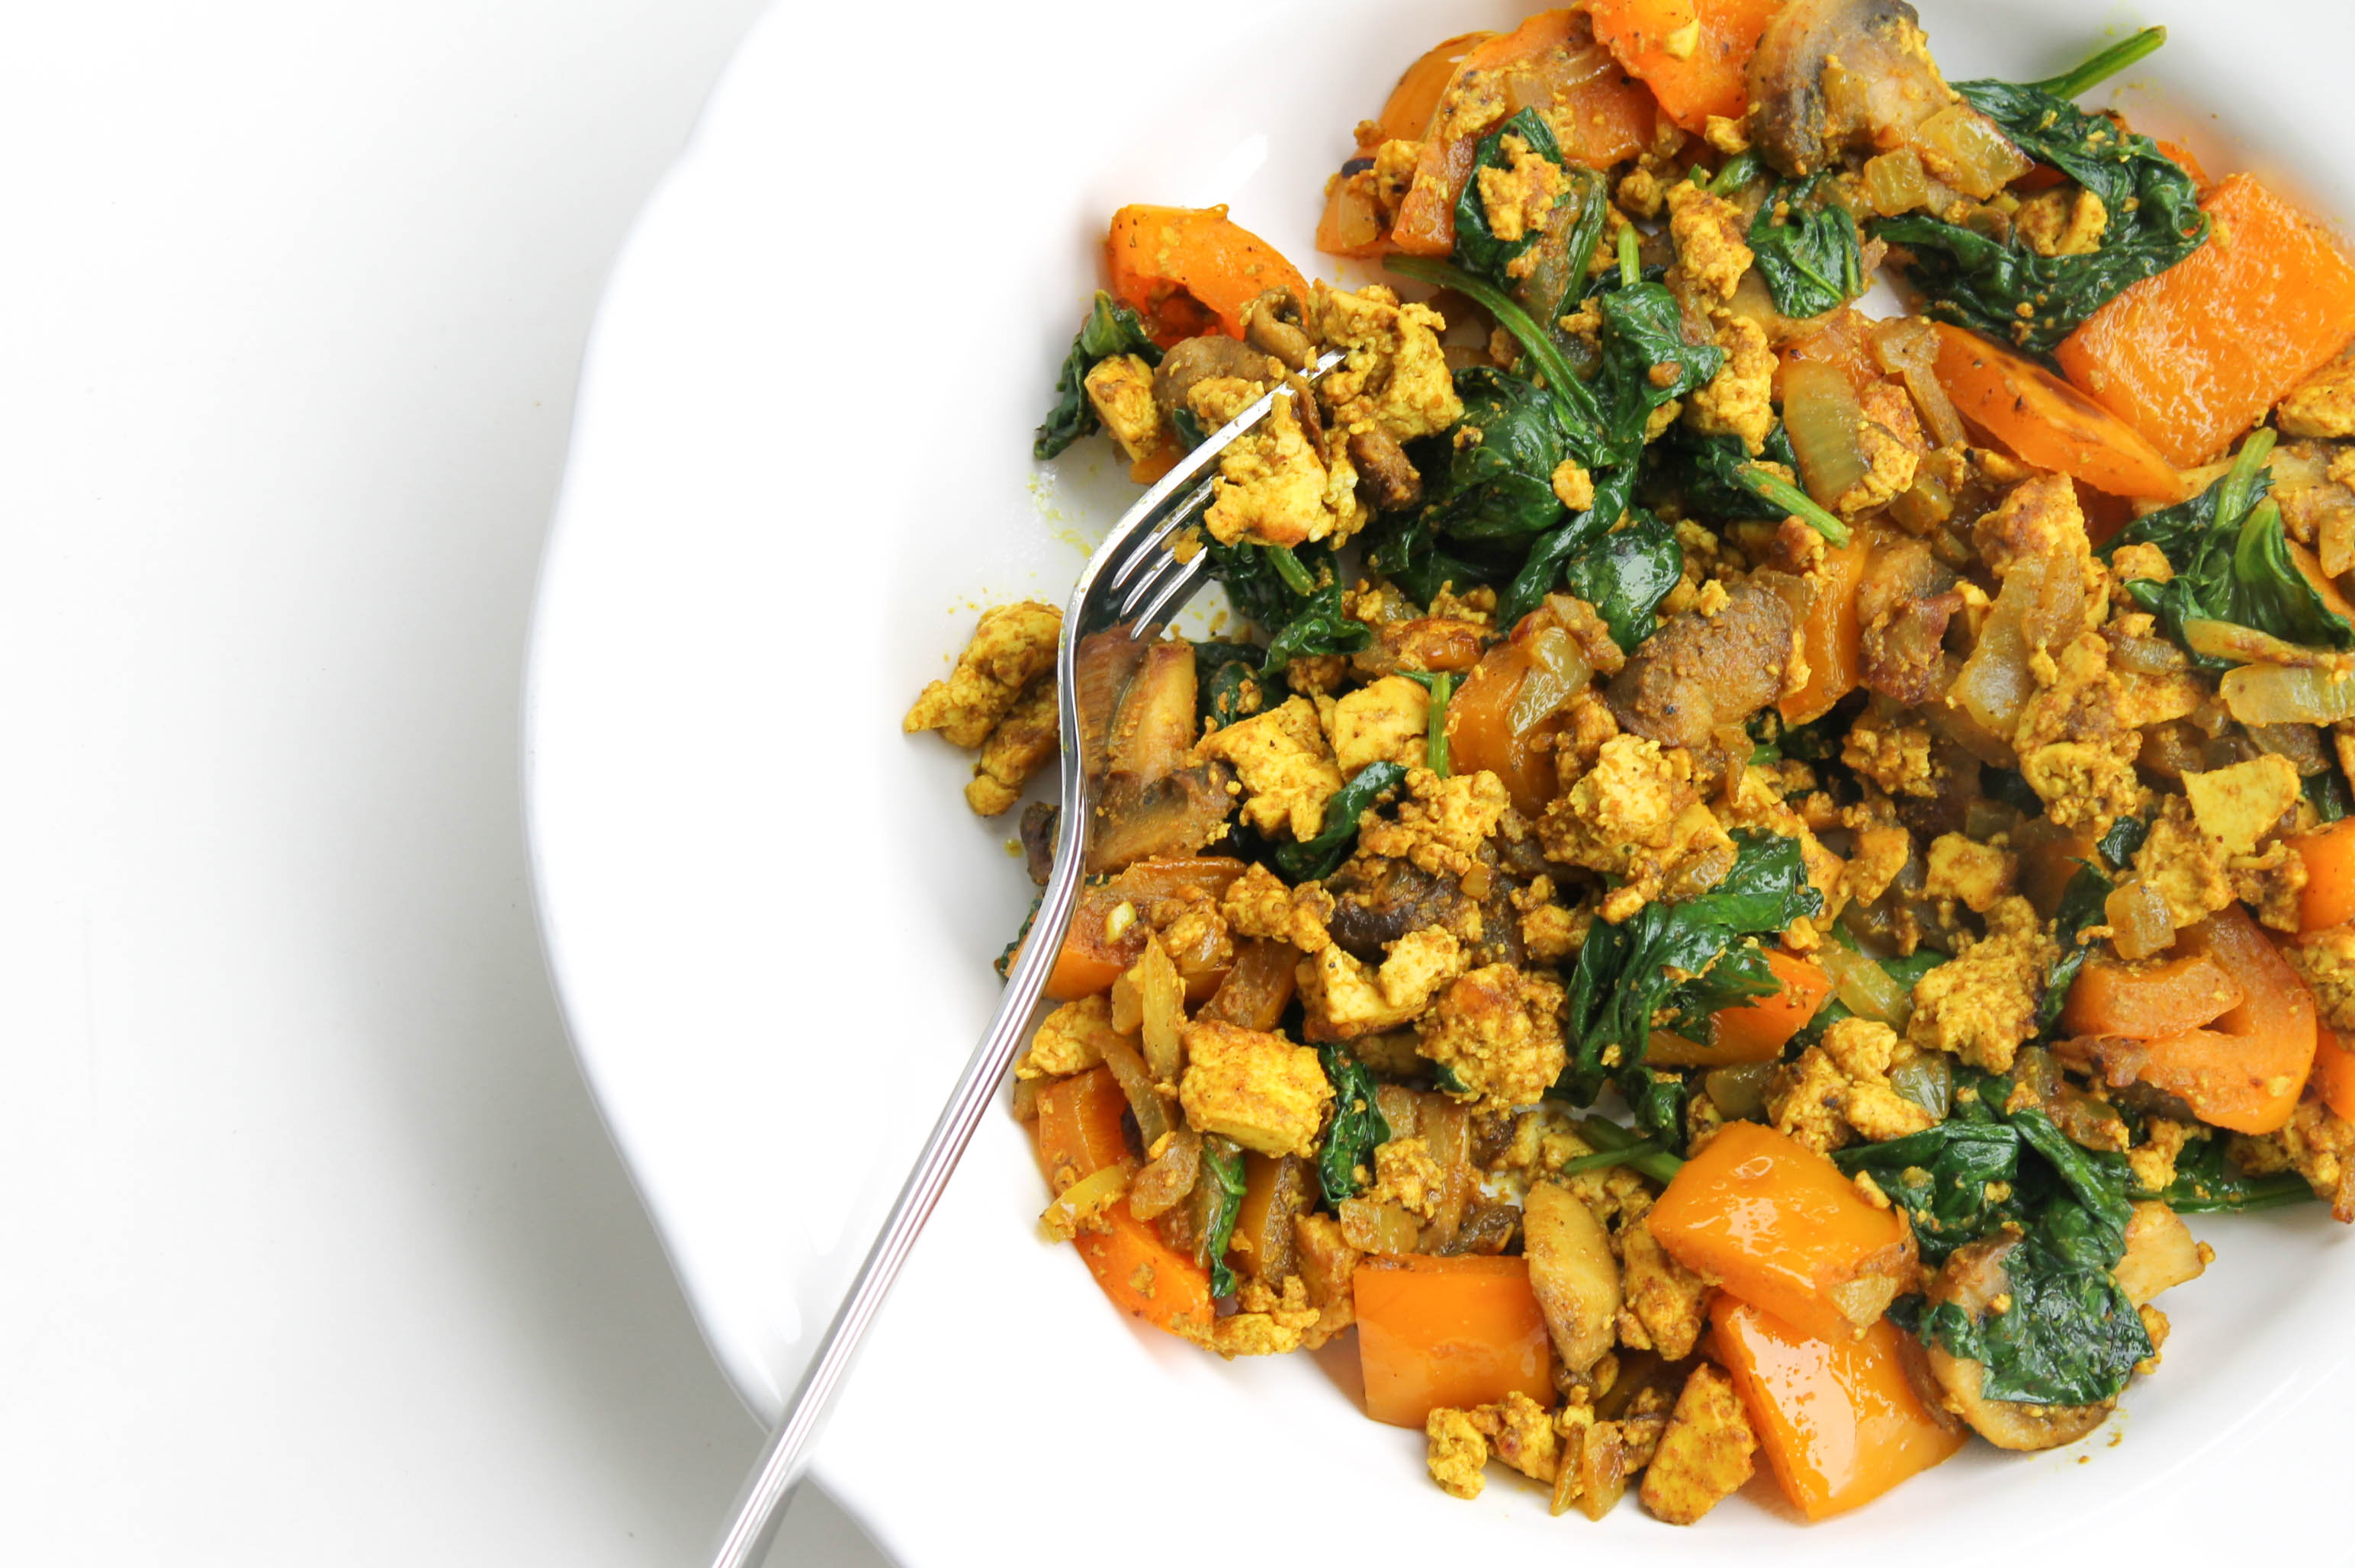 Curried Spinach and Mushroom Tofu Scramble - Reaching For Greens